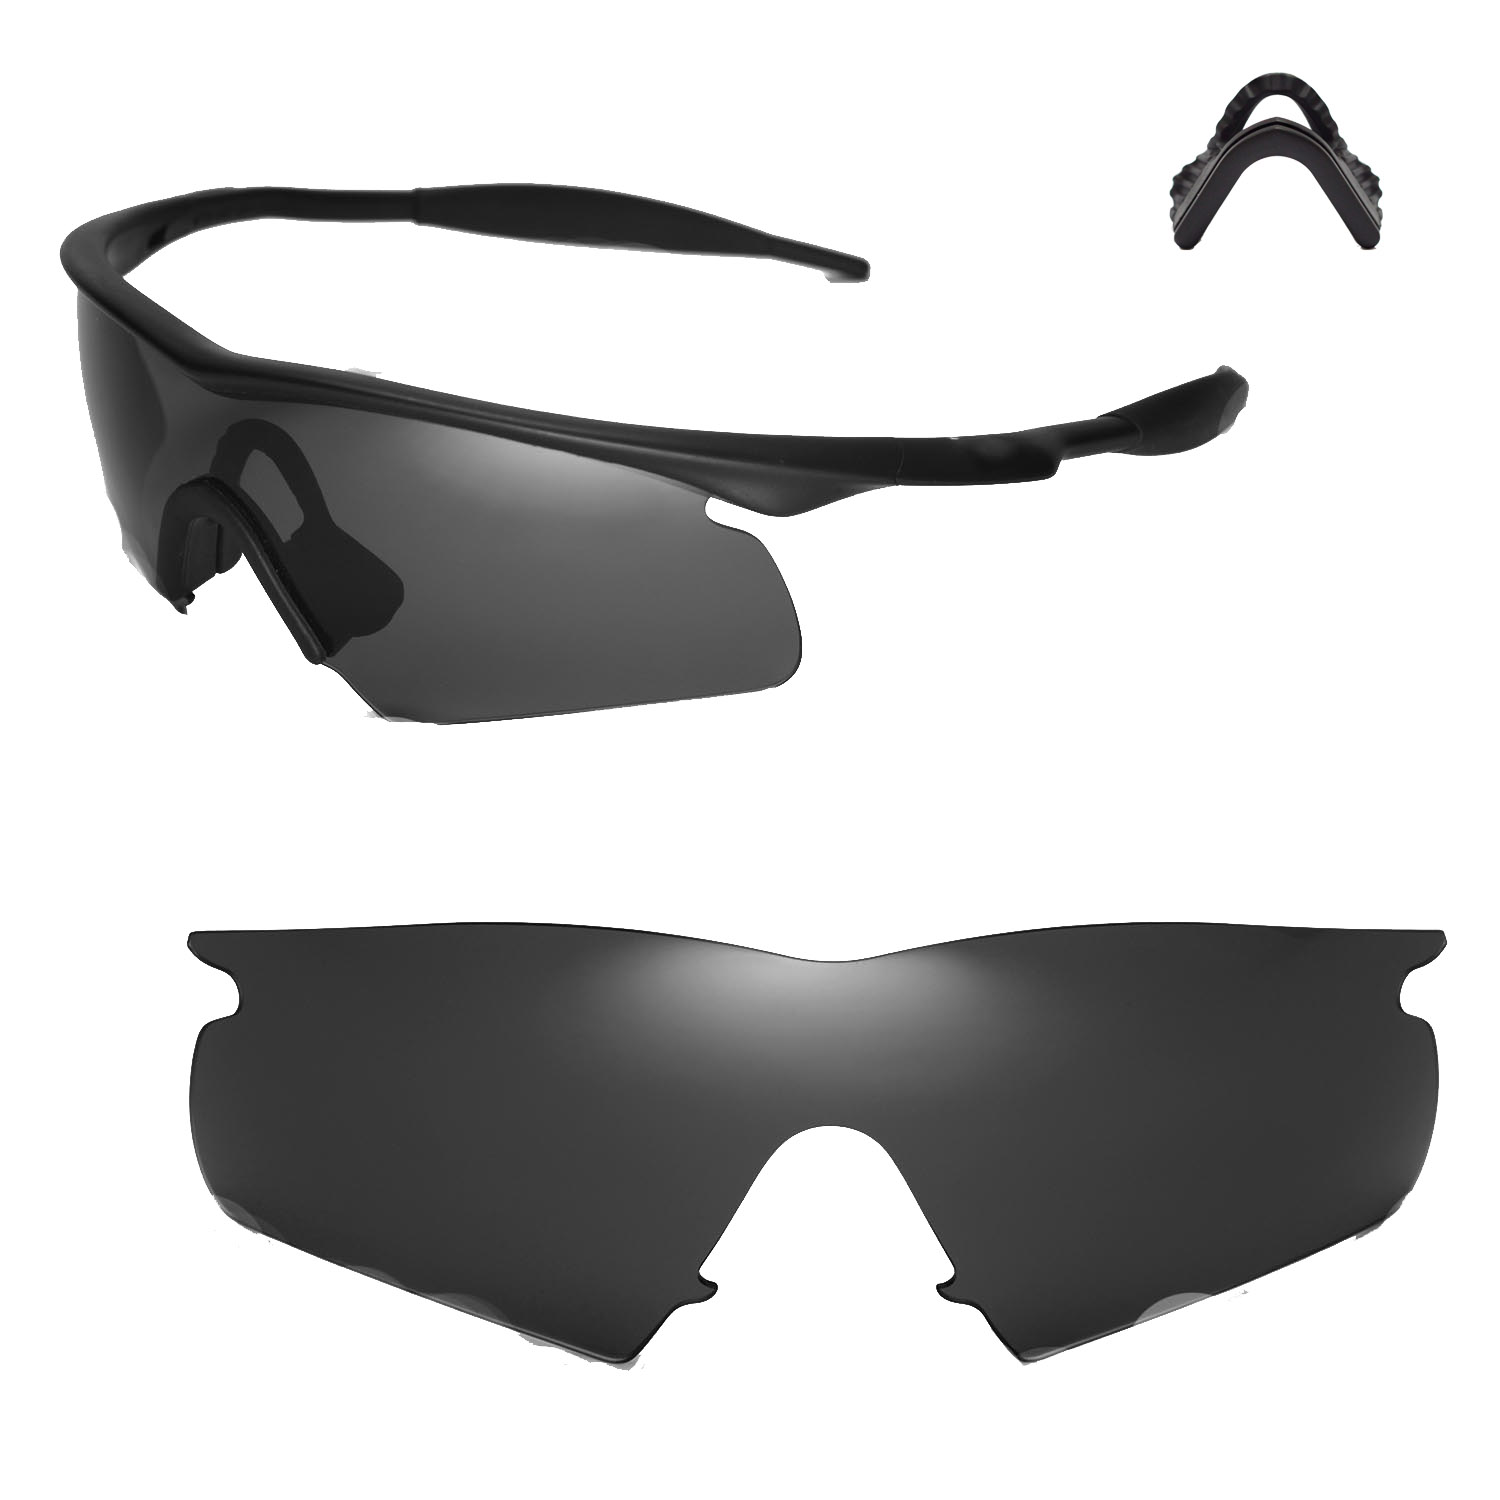 New Walleva Black Replacement Lenses For Oakley New M Frame Hybrid ...